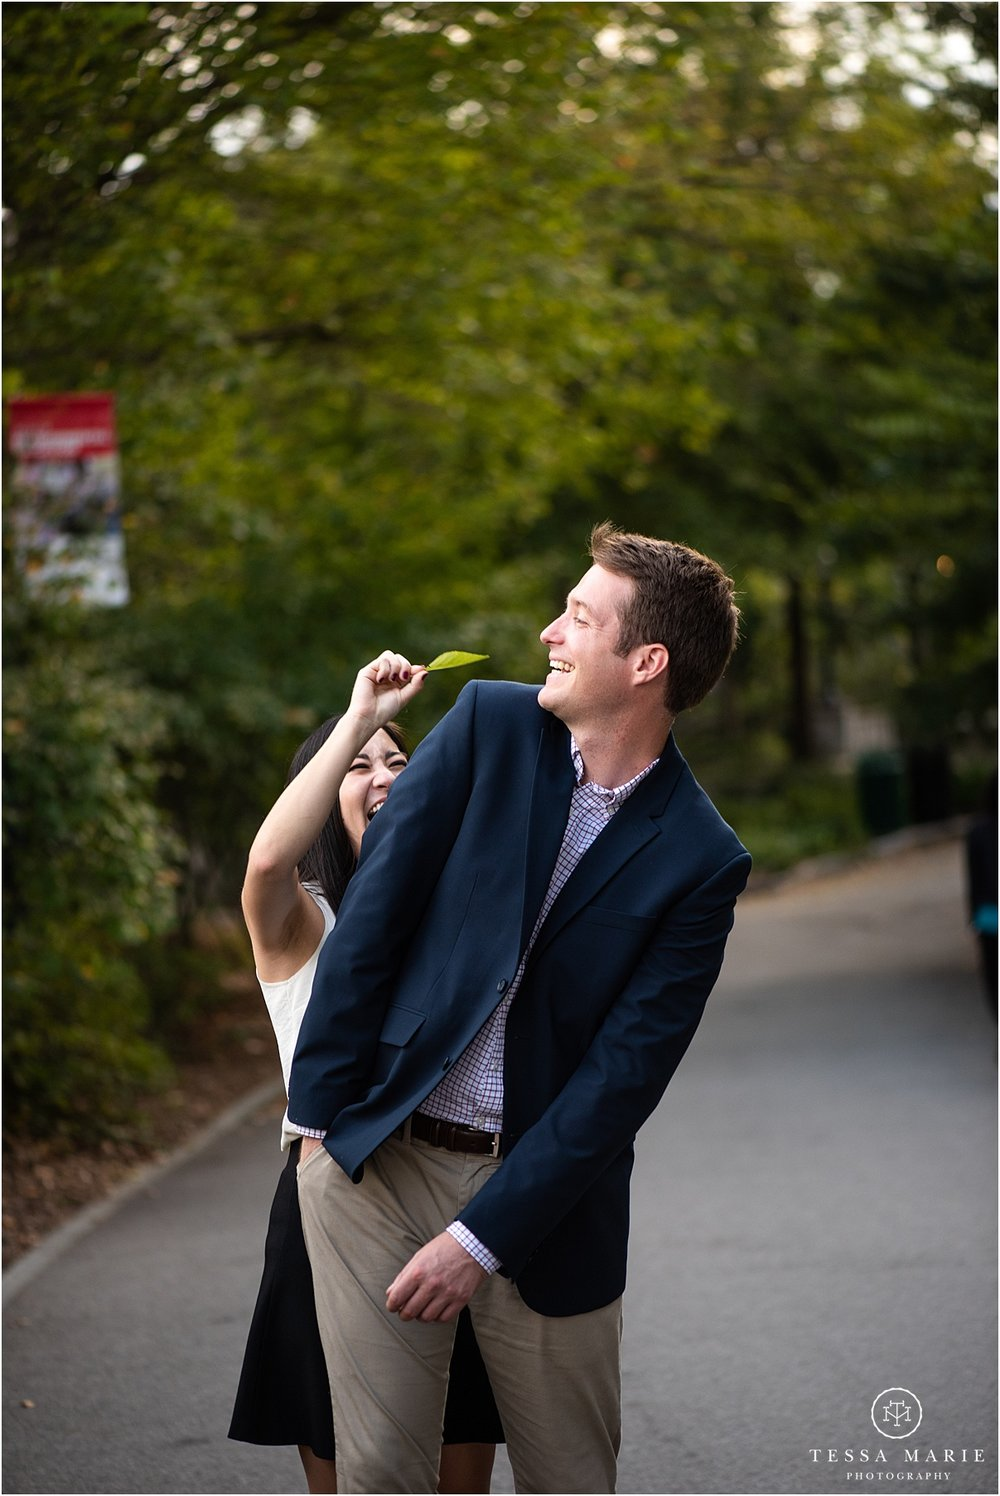 Tessa_marie_photography_wedding_photographer_engagement_pictures_piedmont_park_0066.jpg